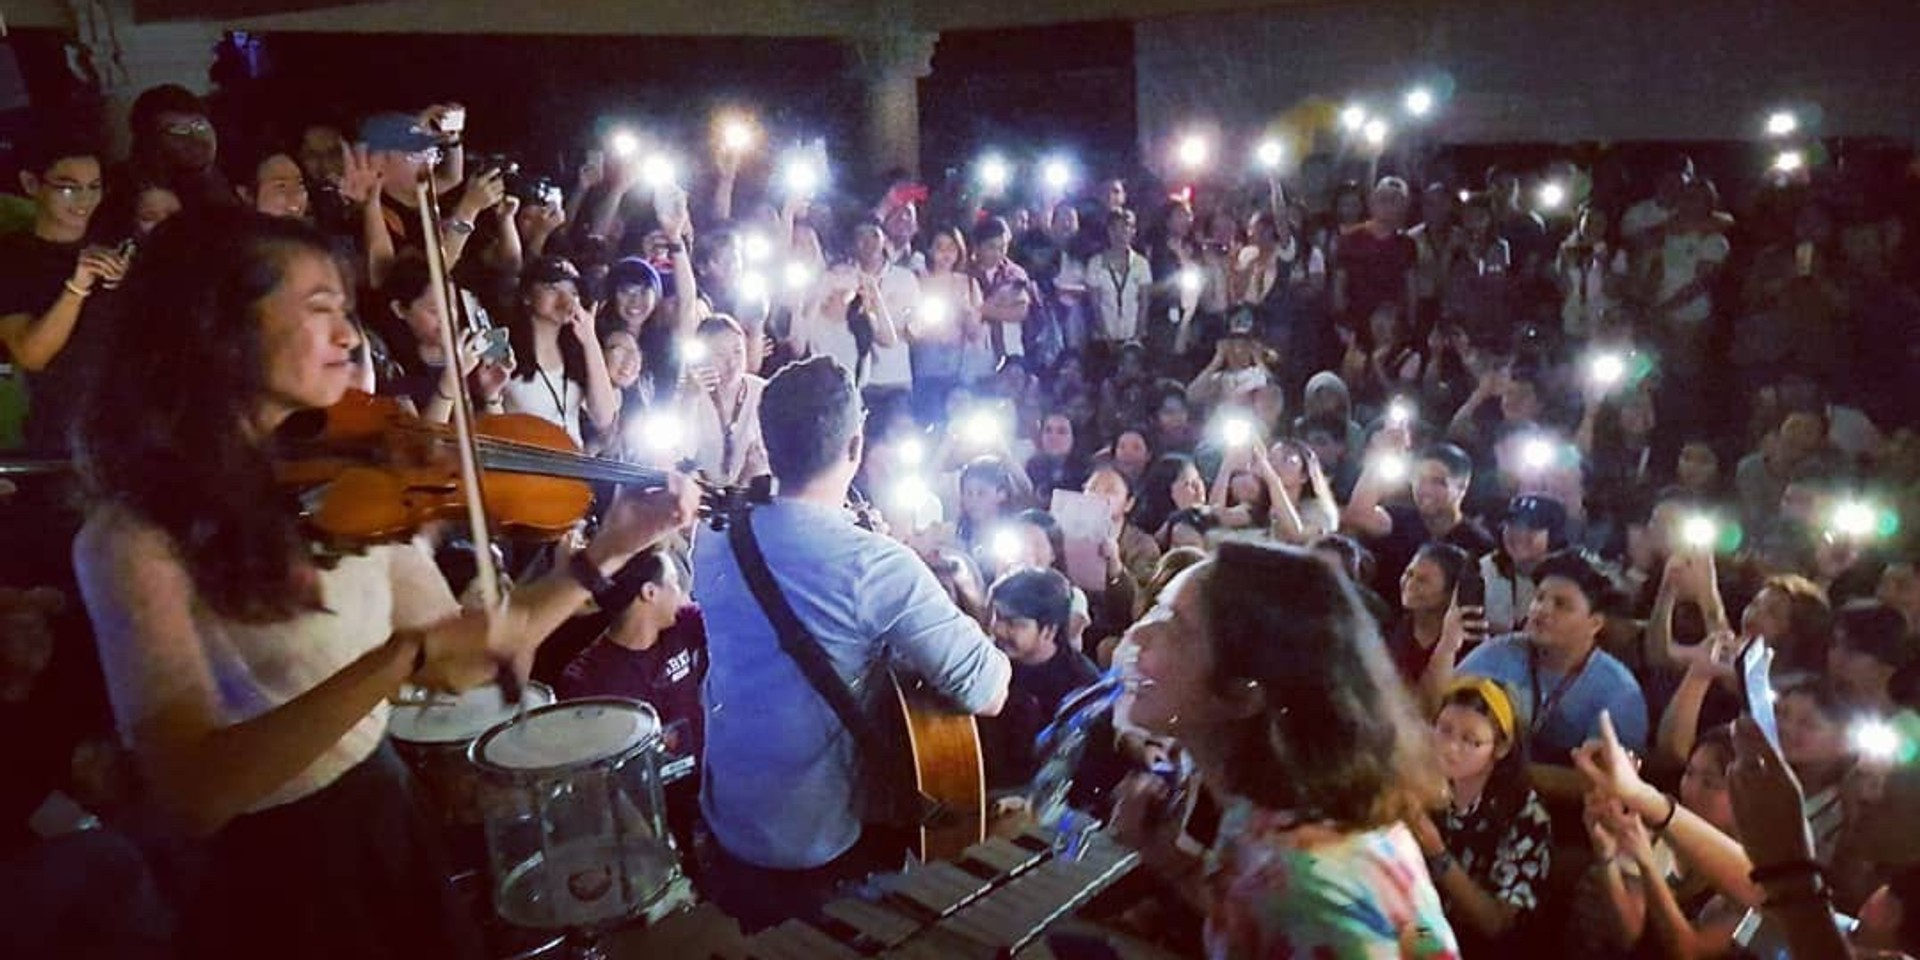 Watch The Ransom Collective perform an intimate concert for university students